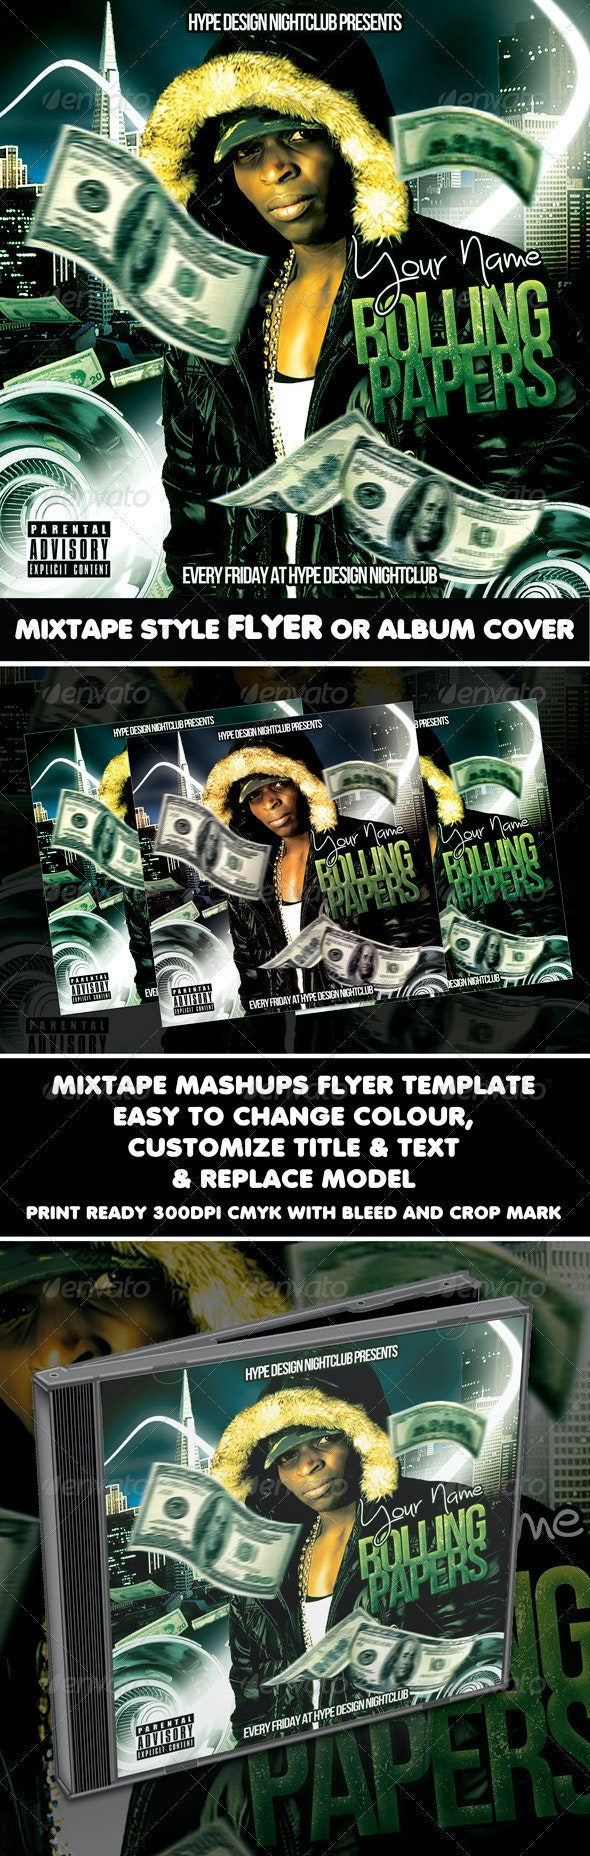 Rolling Papers Mixtape Flyer or CD Template - CD & DVD Artwork Print Templates